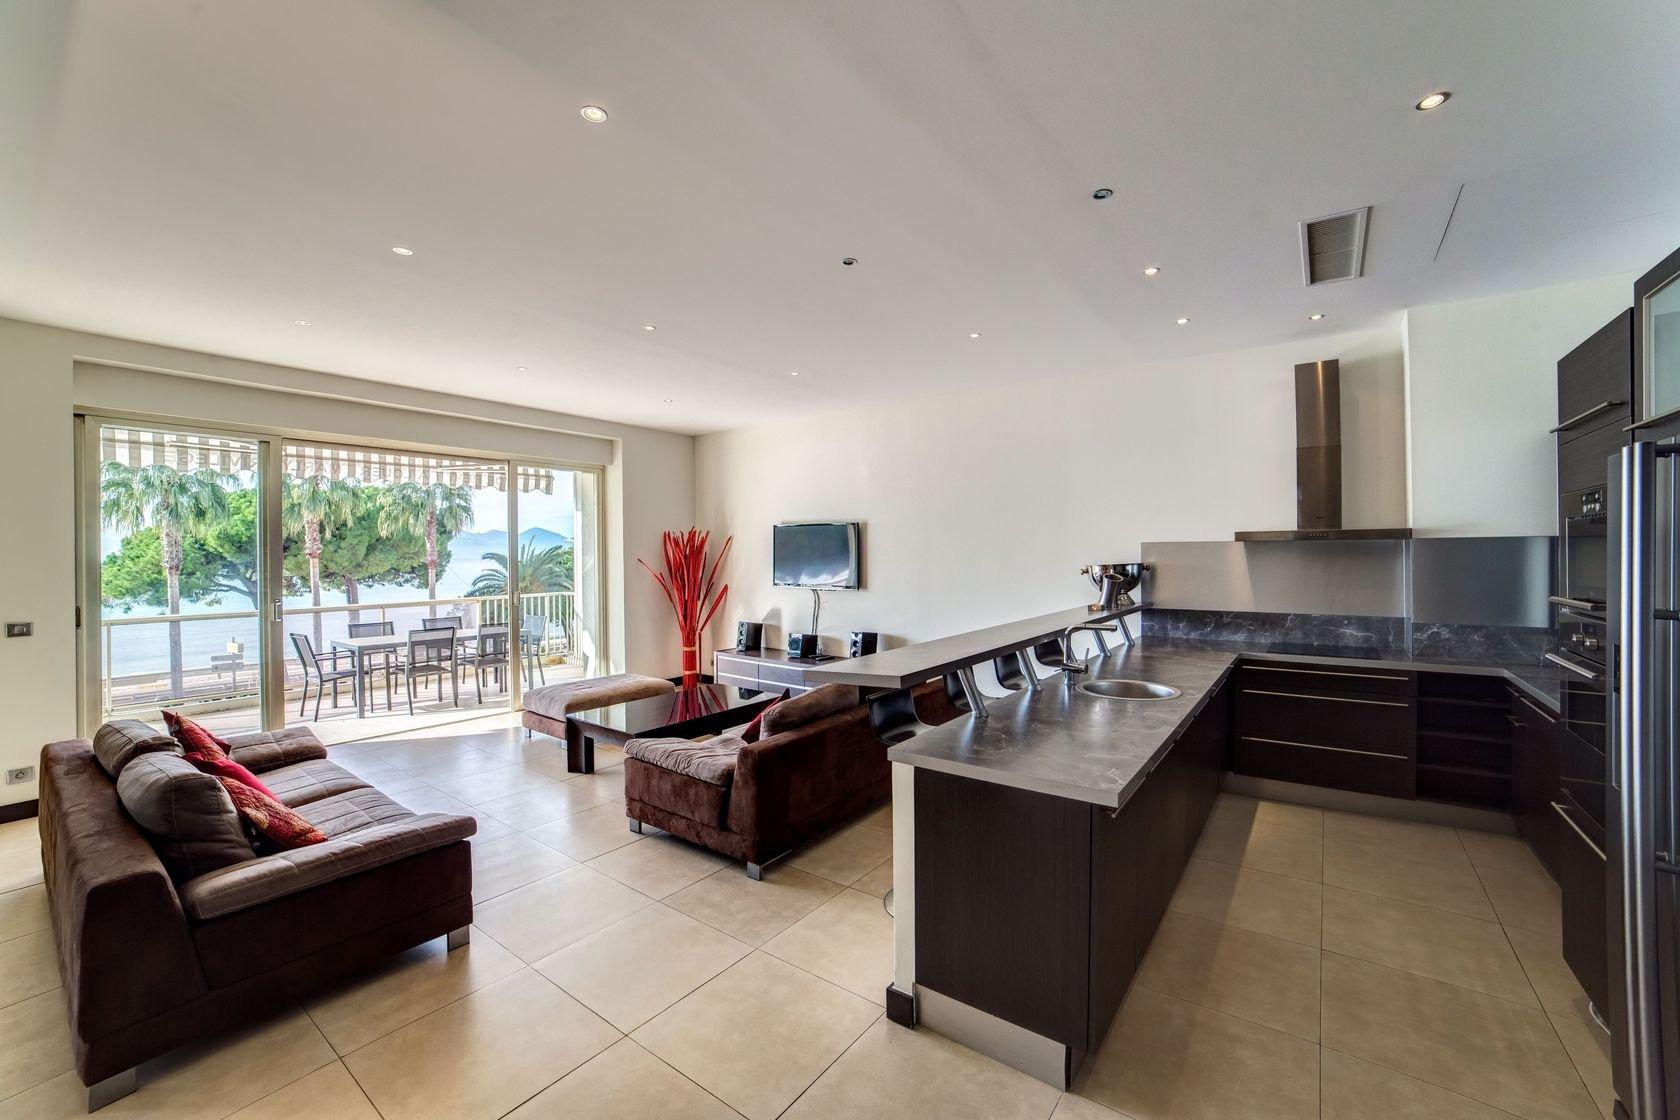 CANNES CROISETTE 5 ROOM FLAT FOR SALE